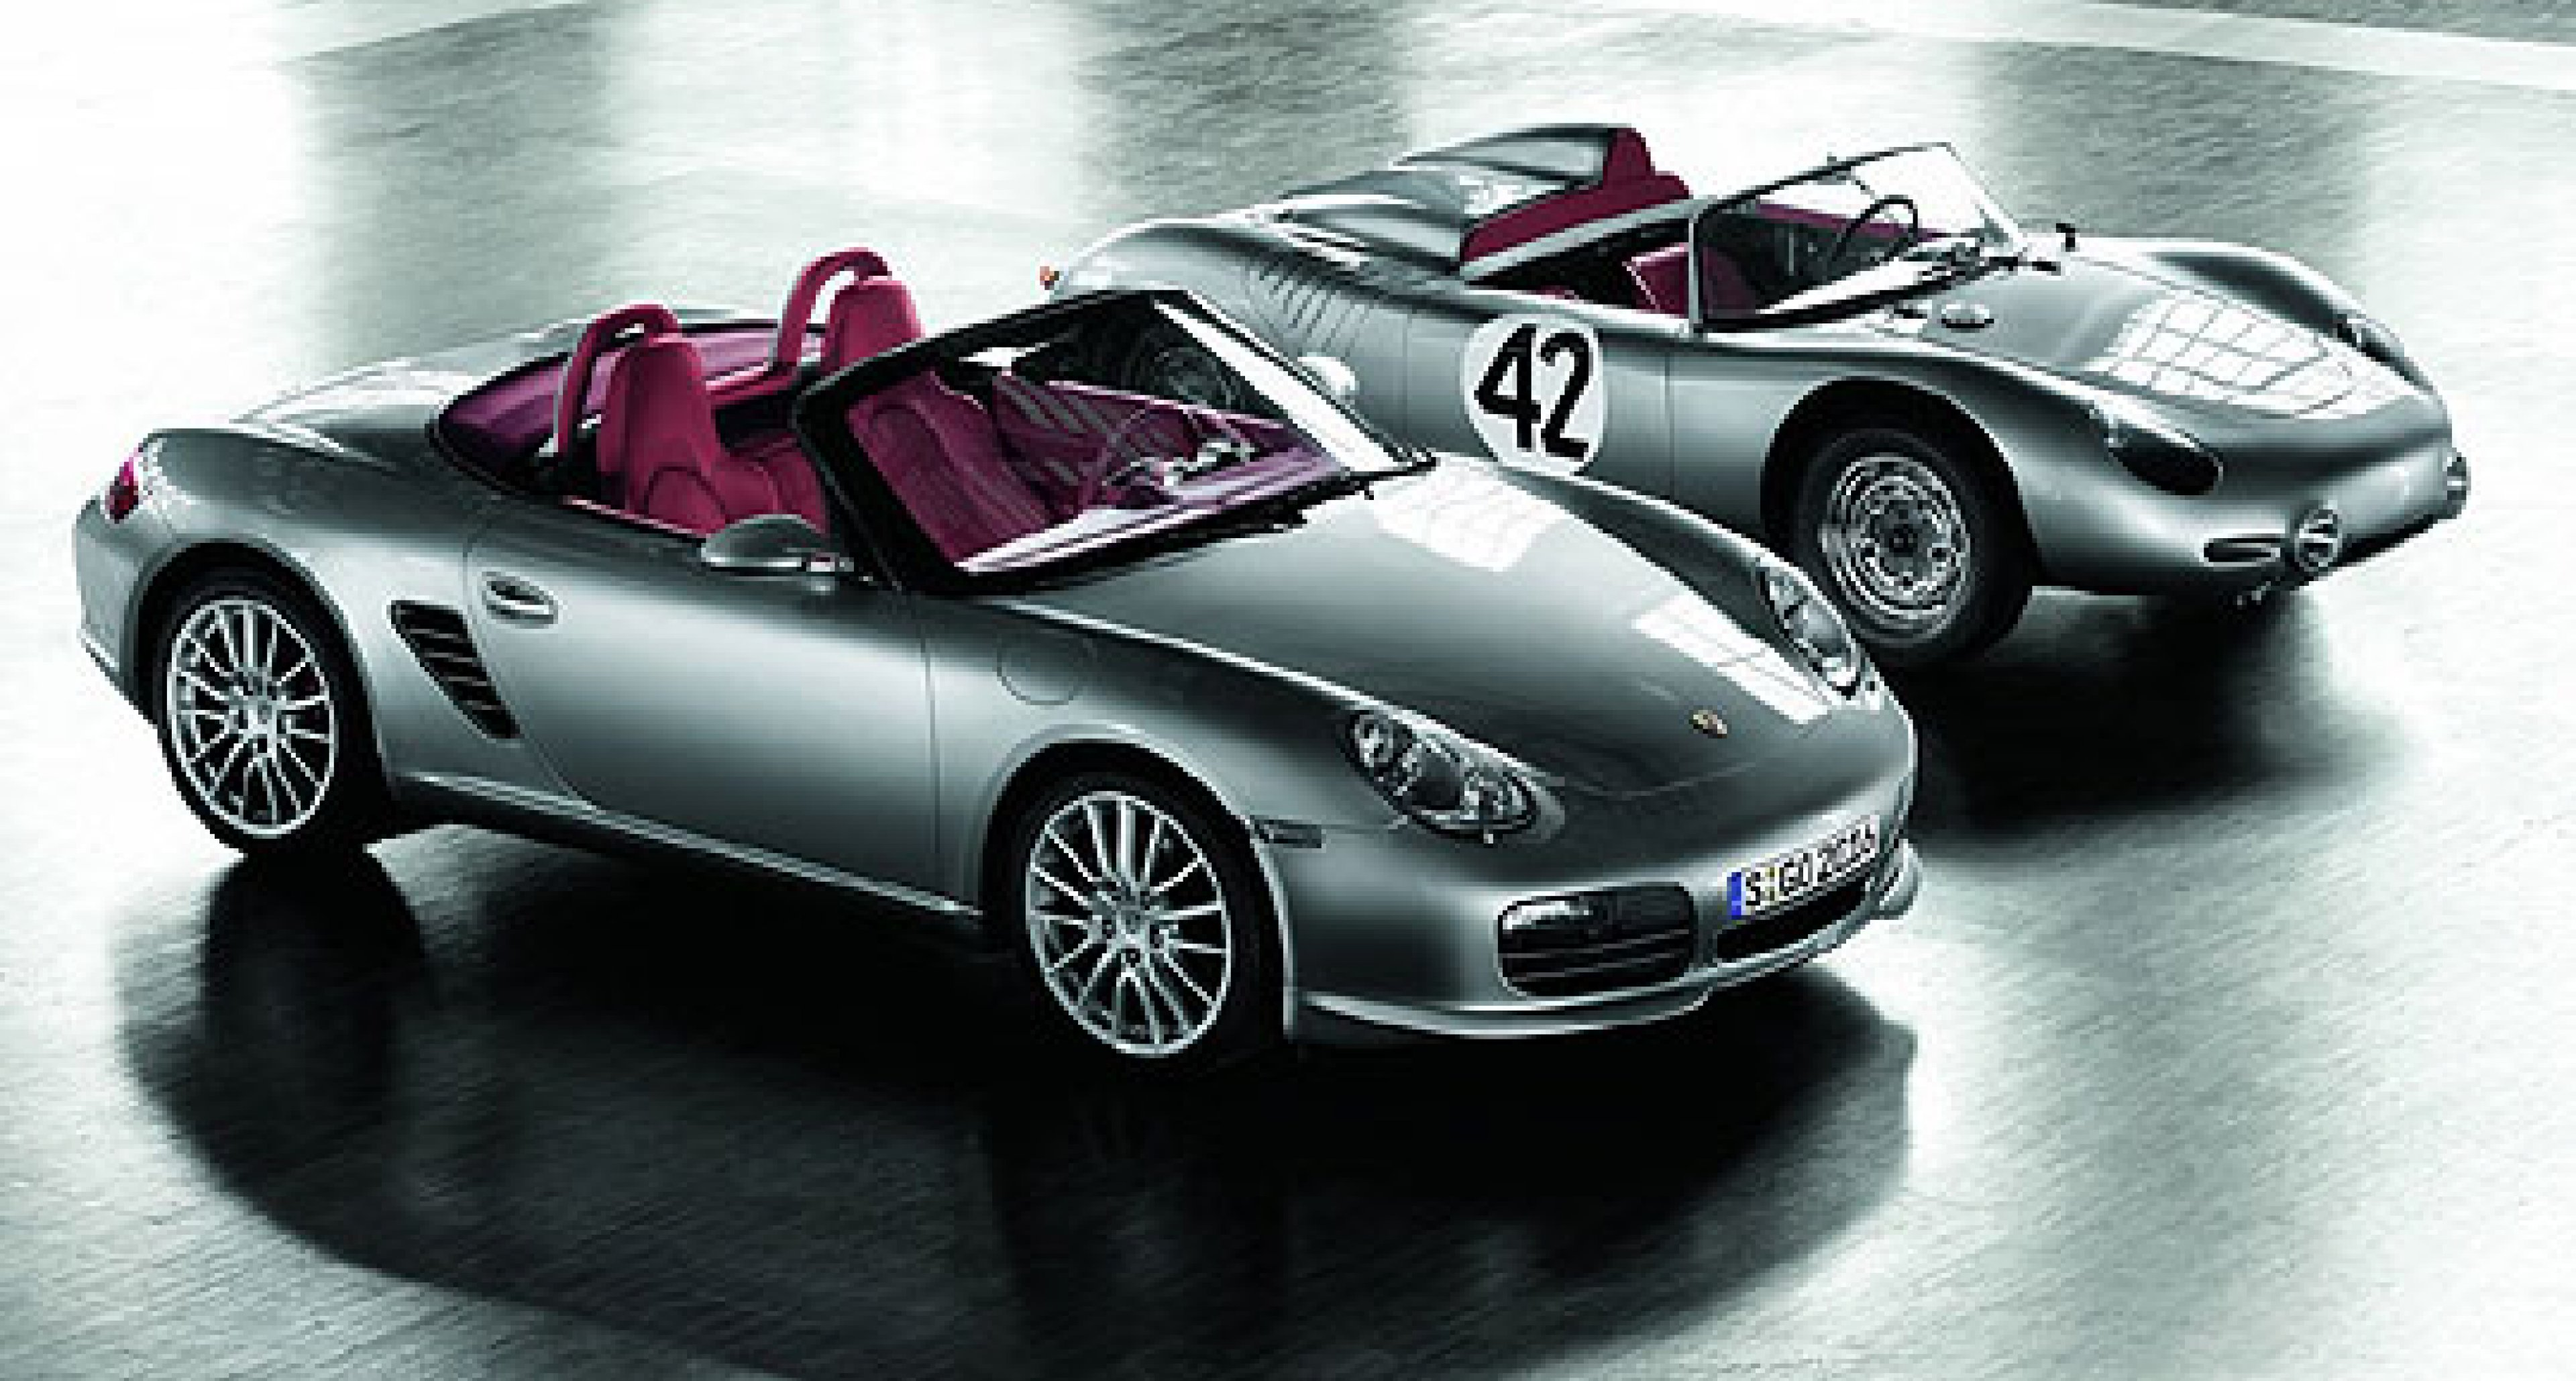 Limited Edition Boxster RS 60 Spyder